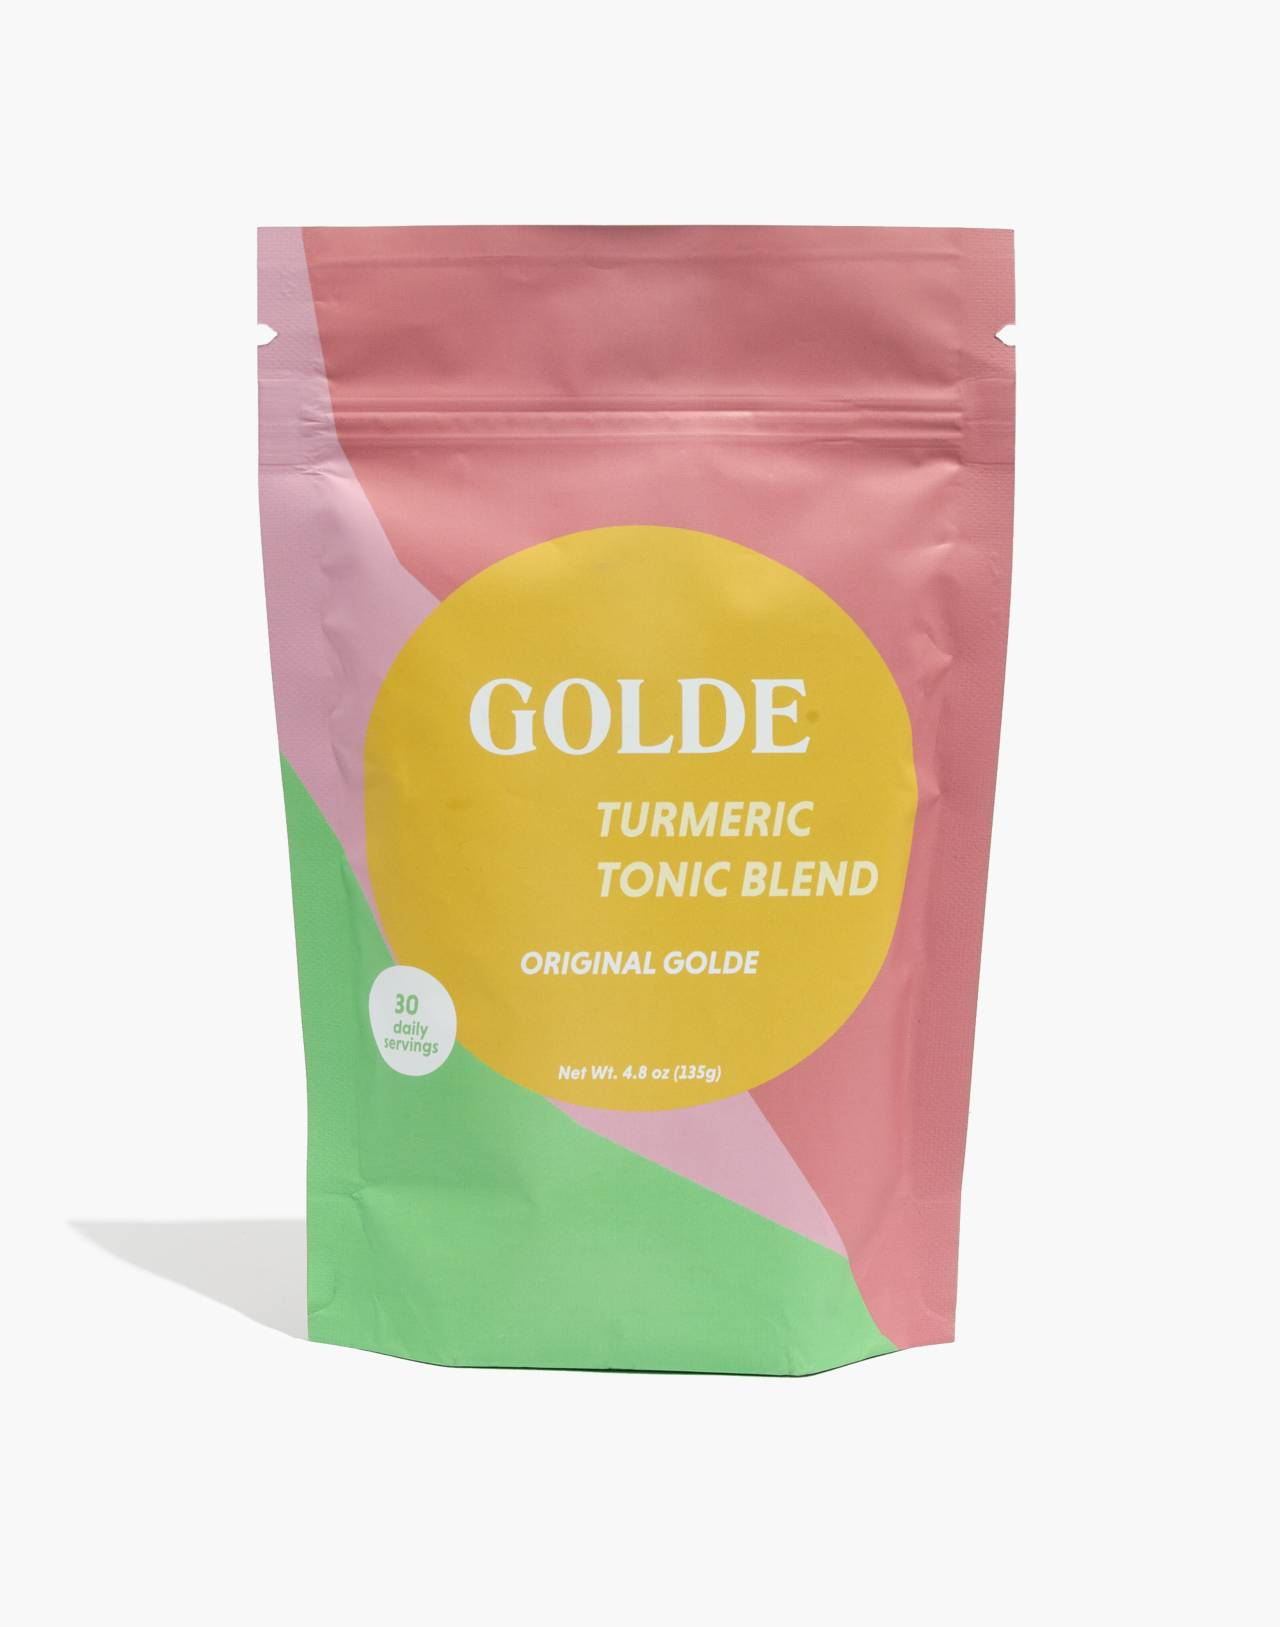 Golde™ Original Turmeric Tonic Blend in original image 1